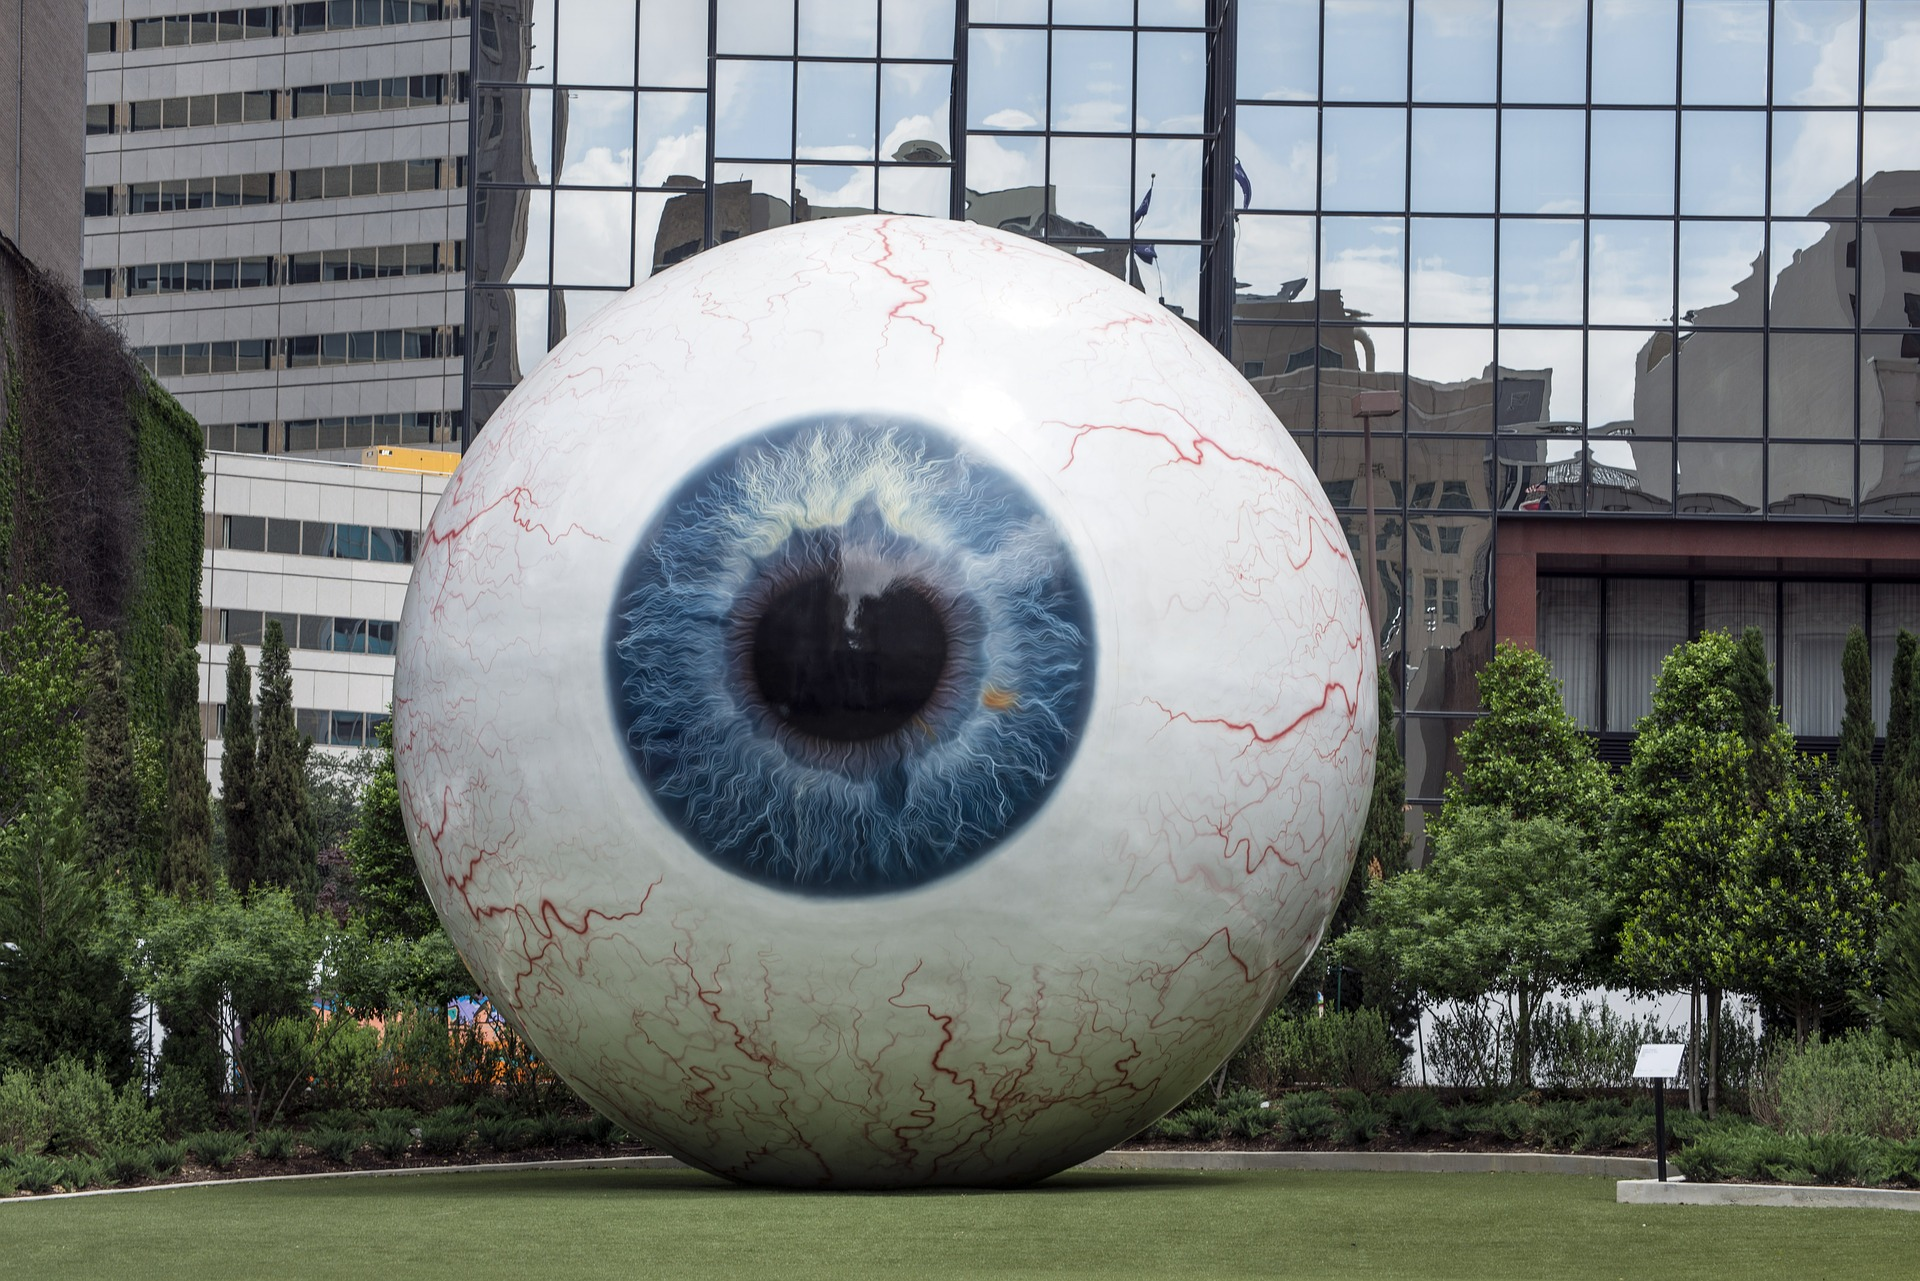 5 Surprising Facts About The Eye